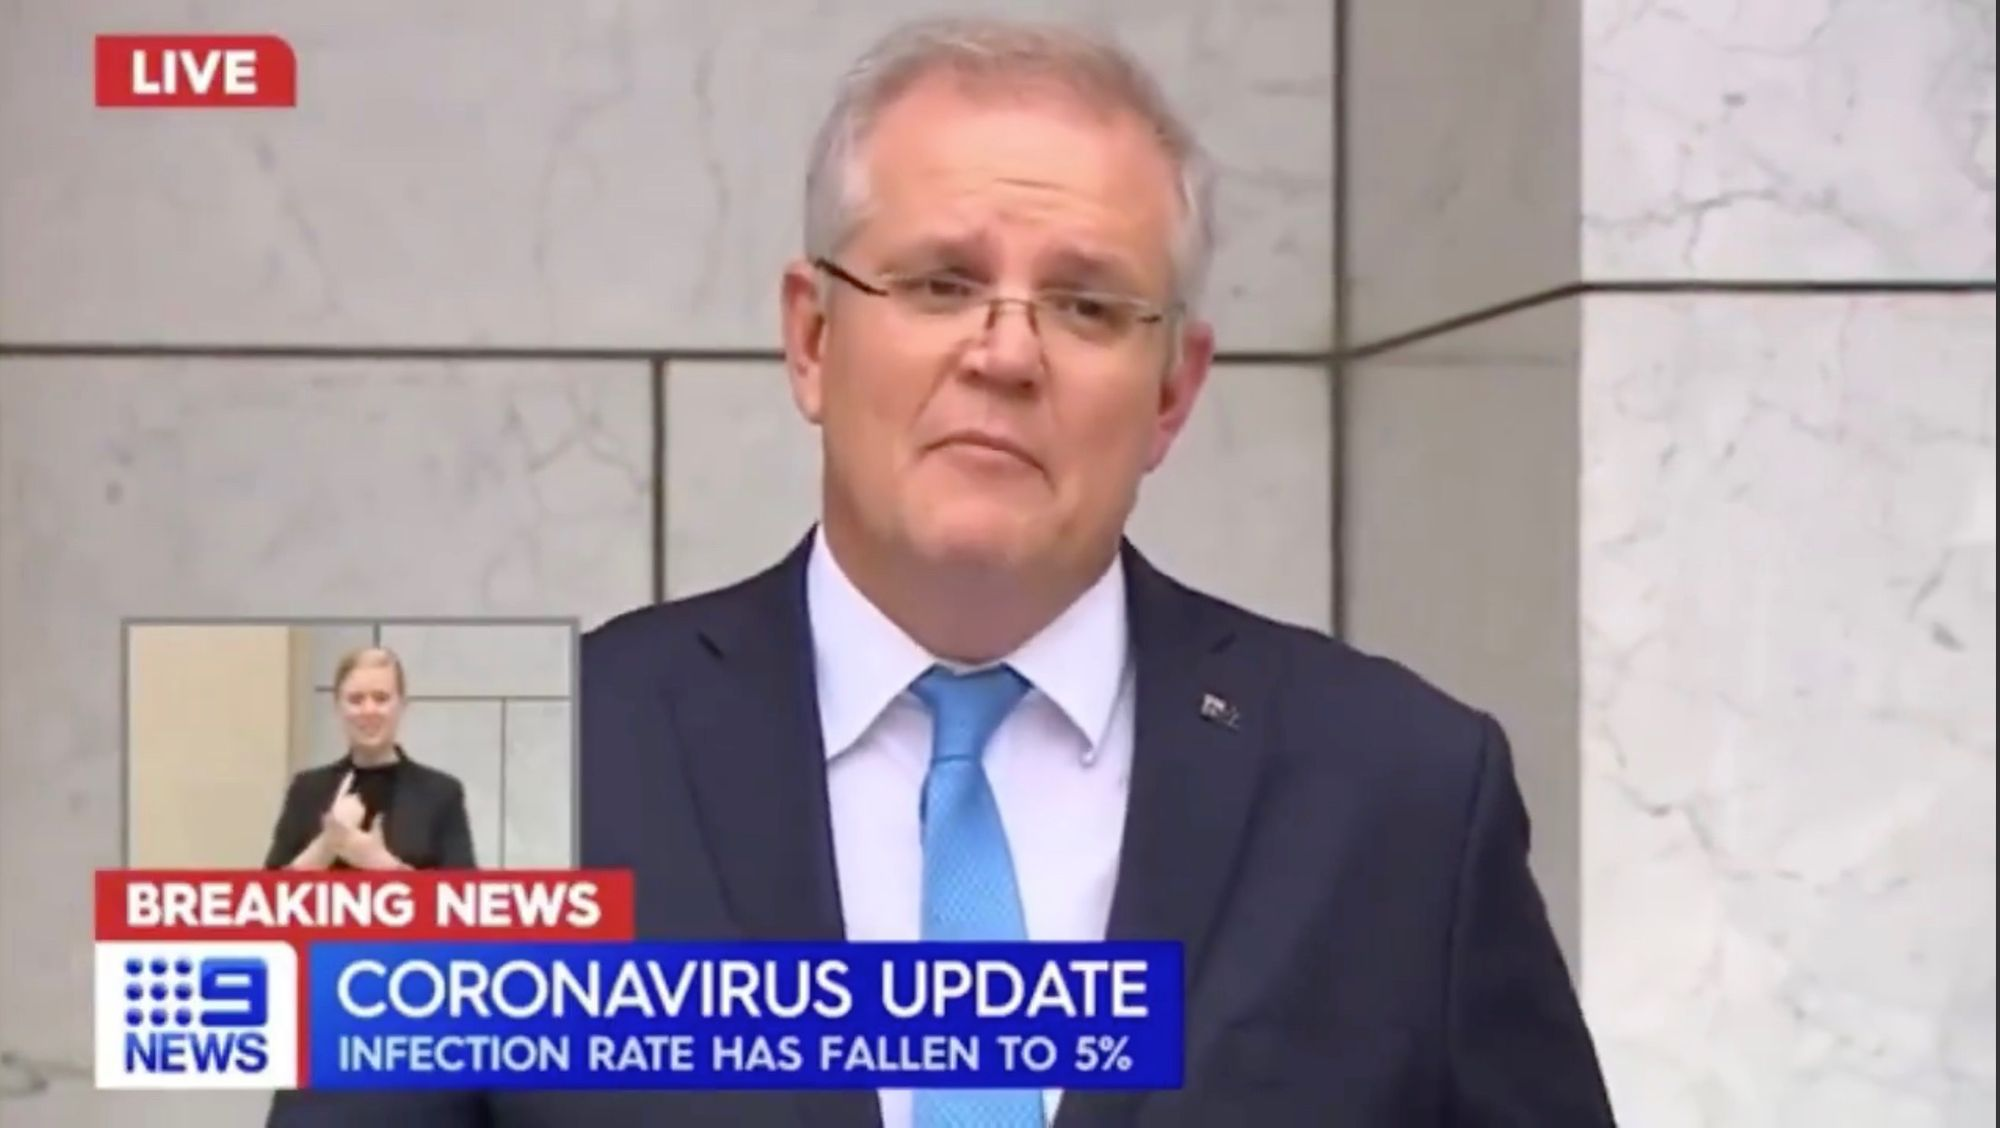 WATCH: Australian PM Scott Morrison tells visitors to go home